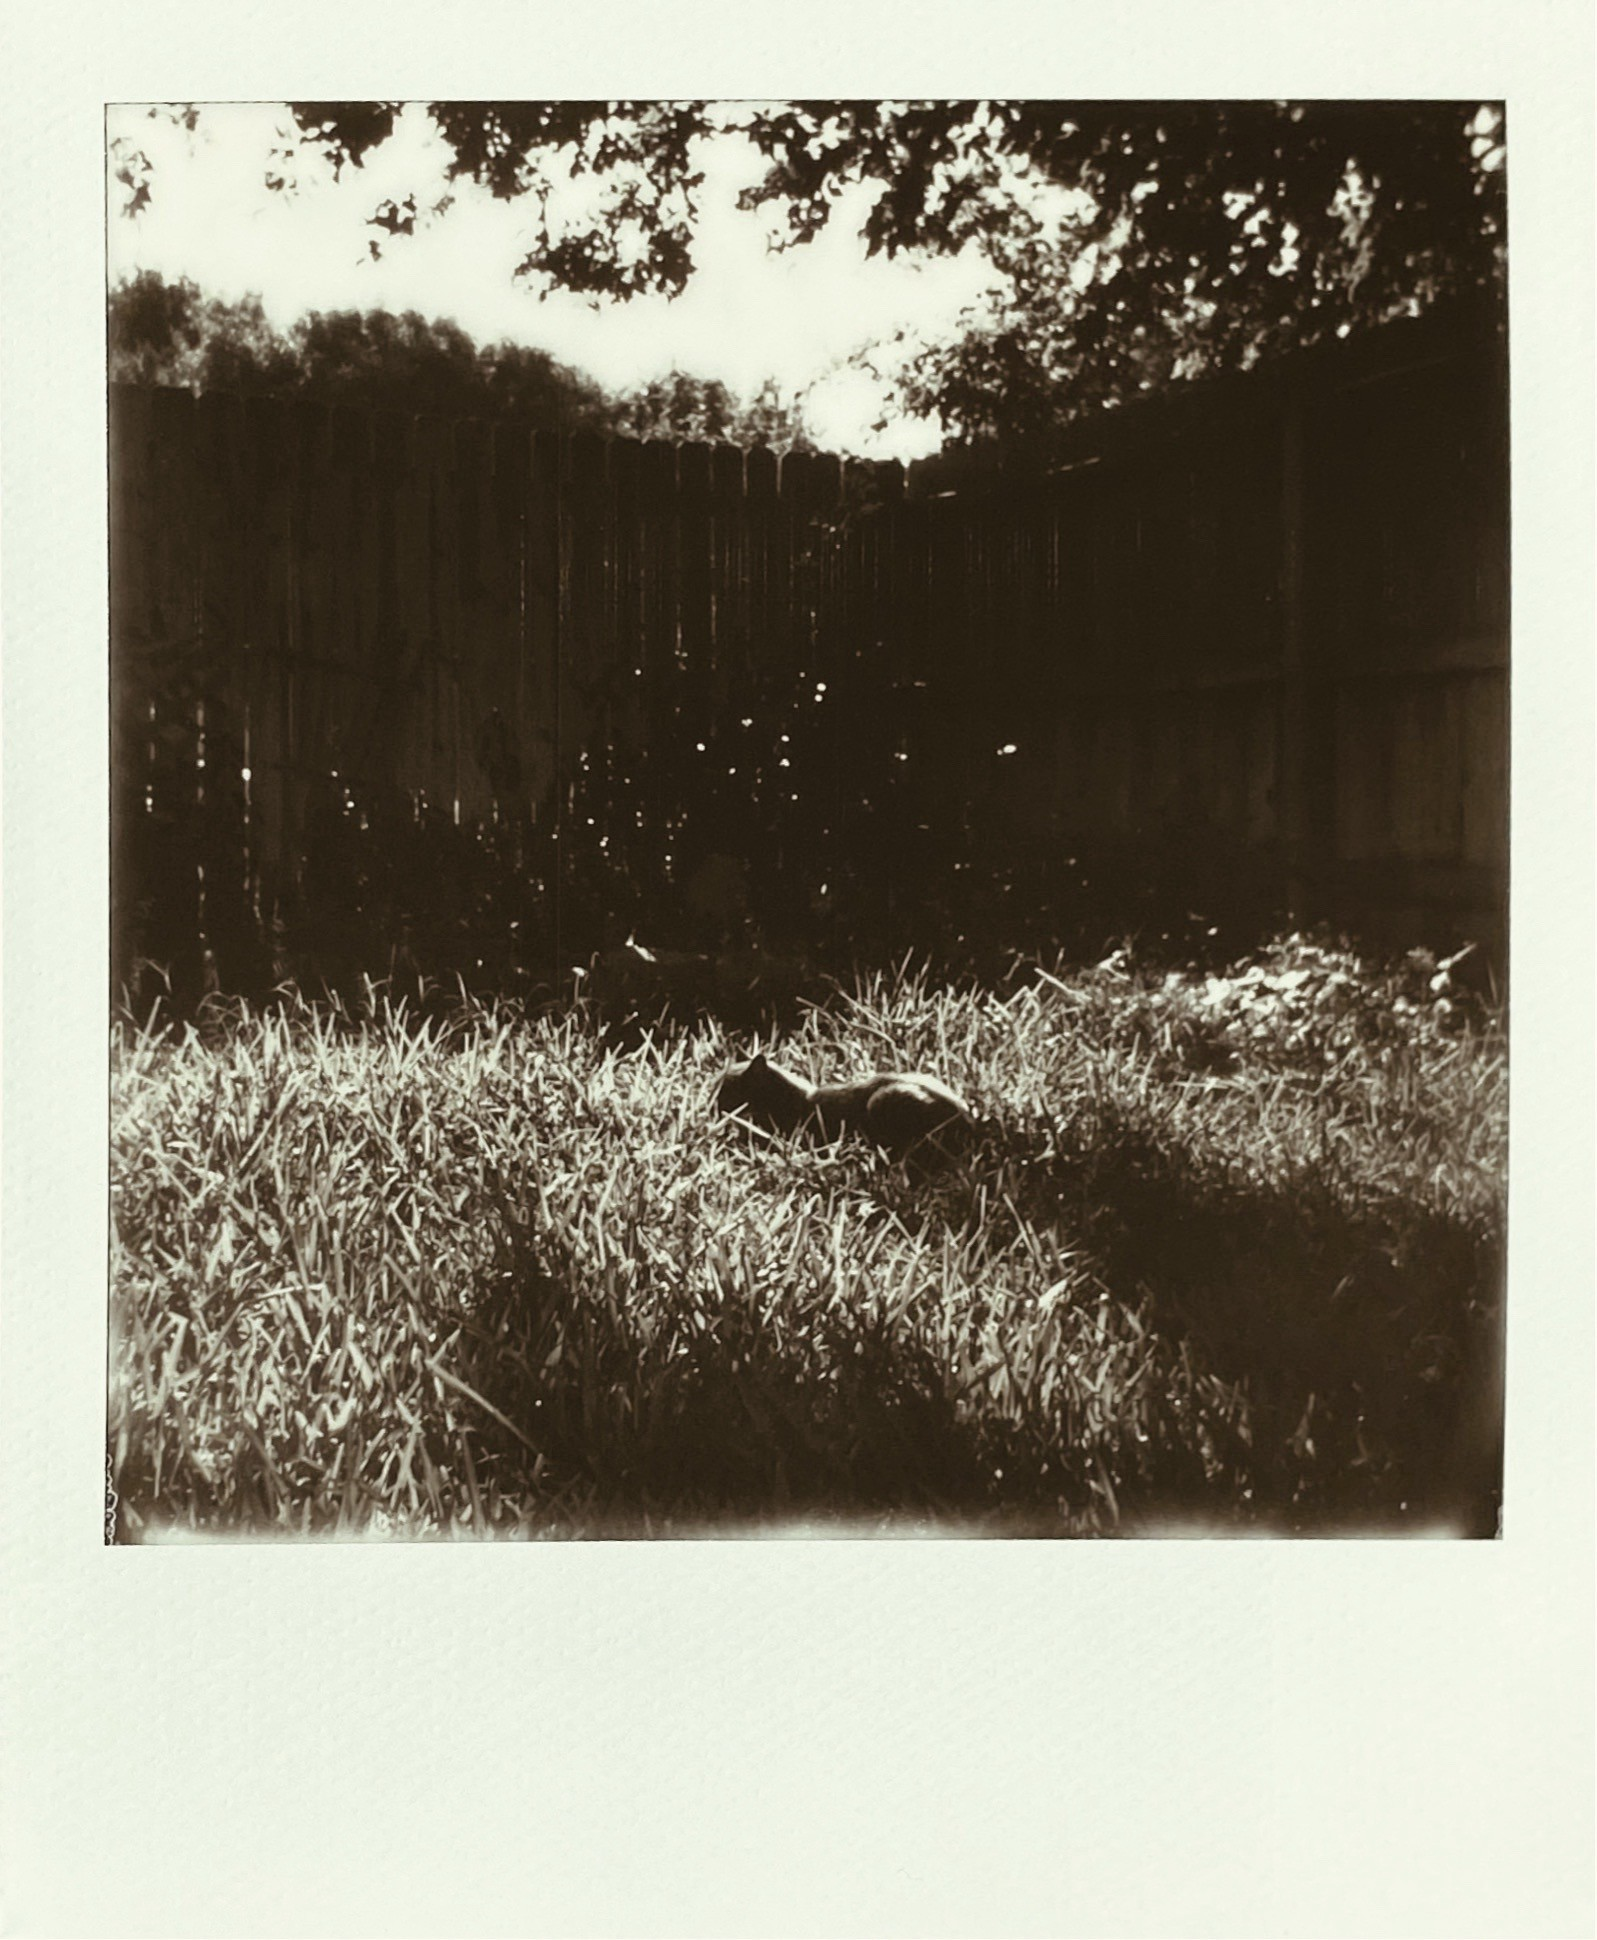 A Polaroid photograph of a cat laying in the grass in the morning, with a fence in the background. Deep shadows.